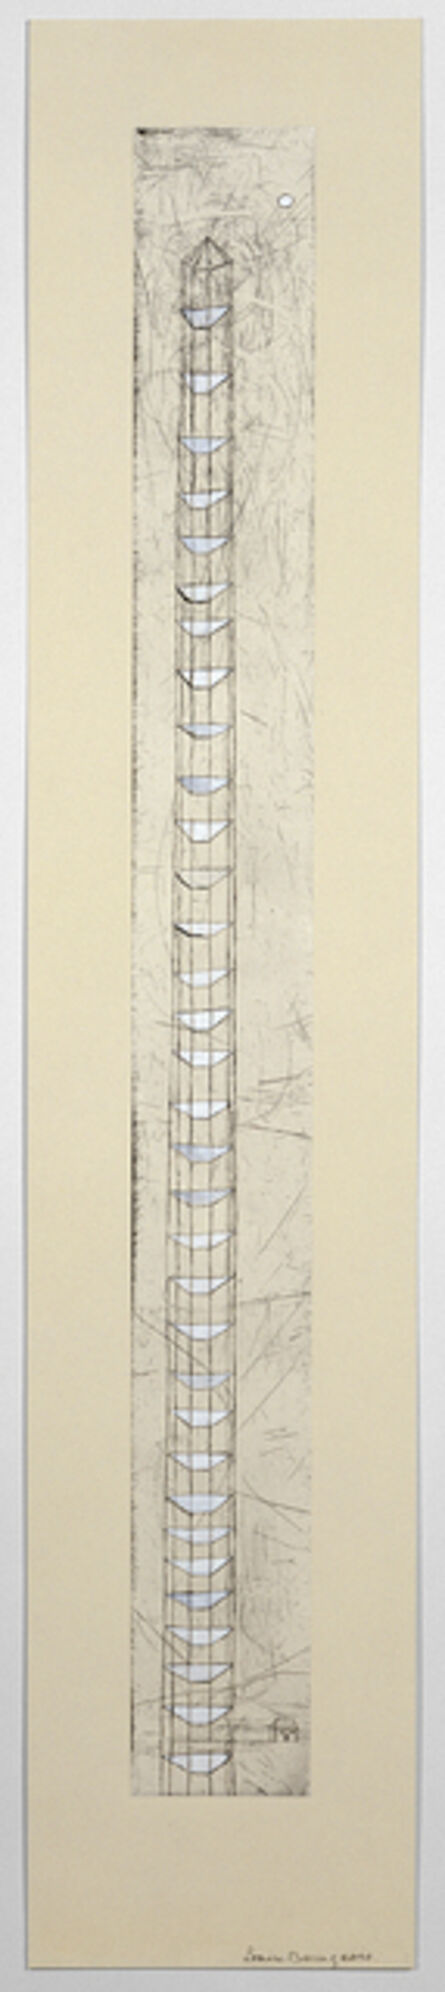 Louise Bourgeois, 'The Sky's the Limit', 1989-2003